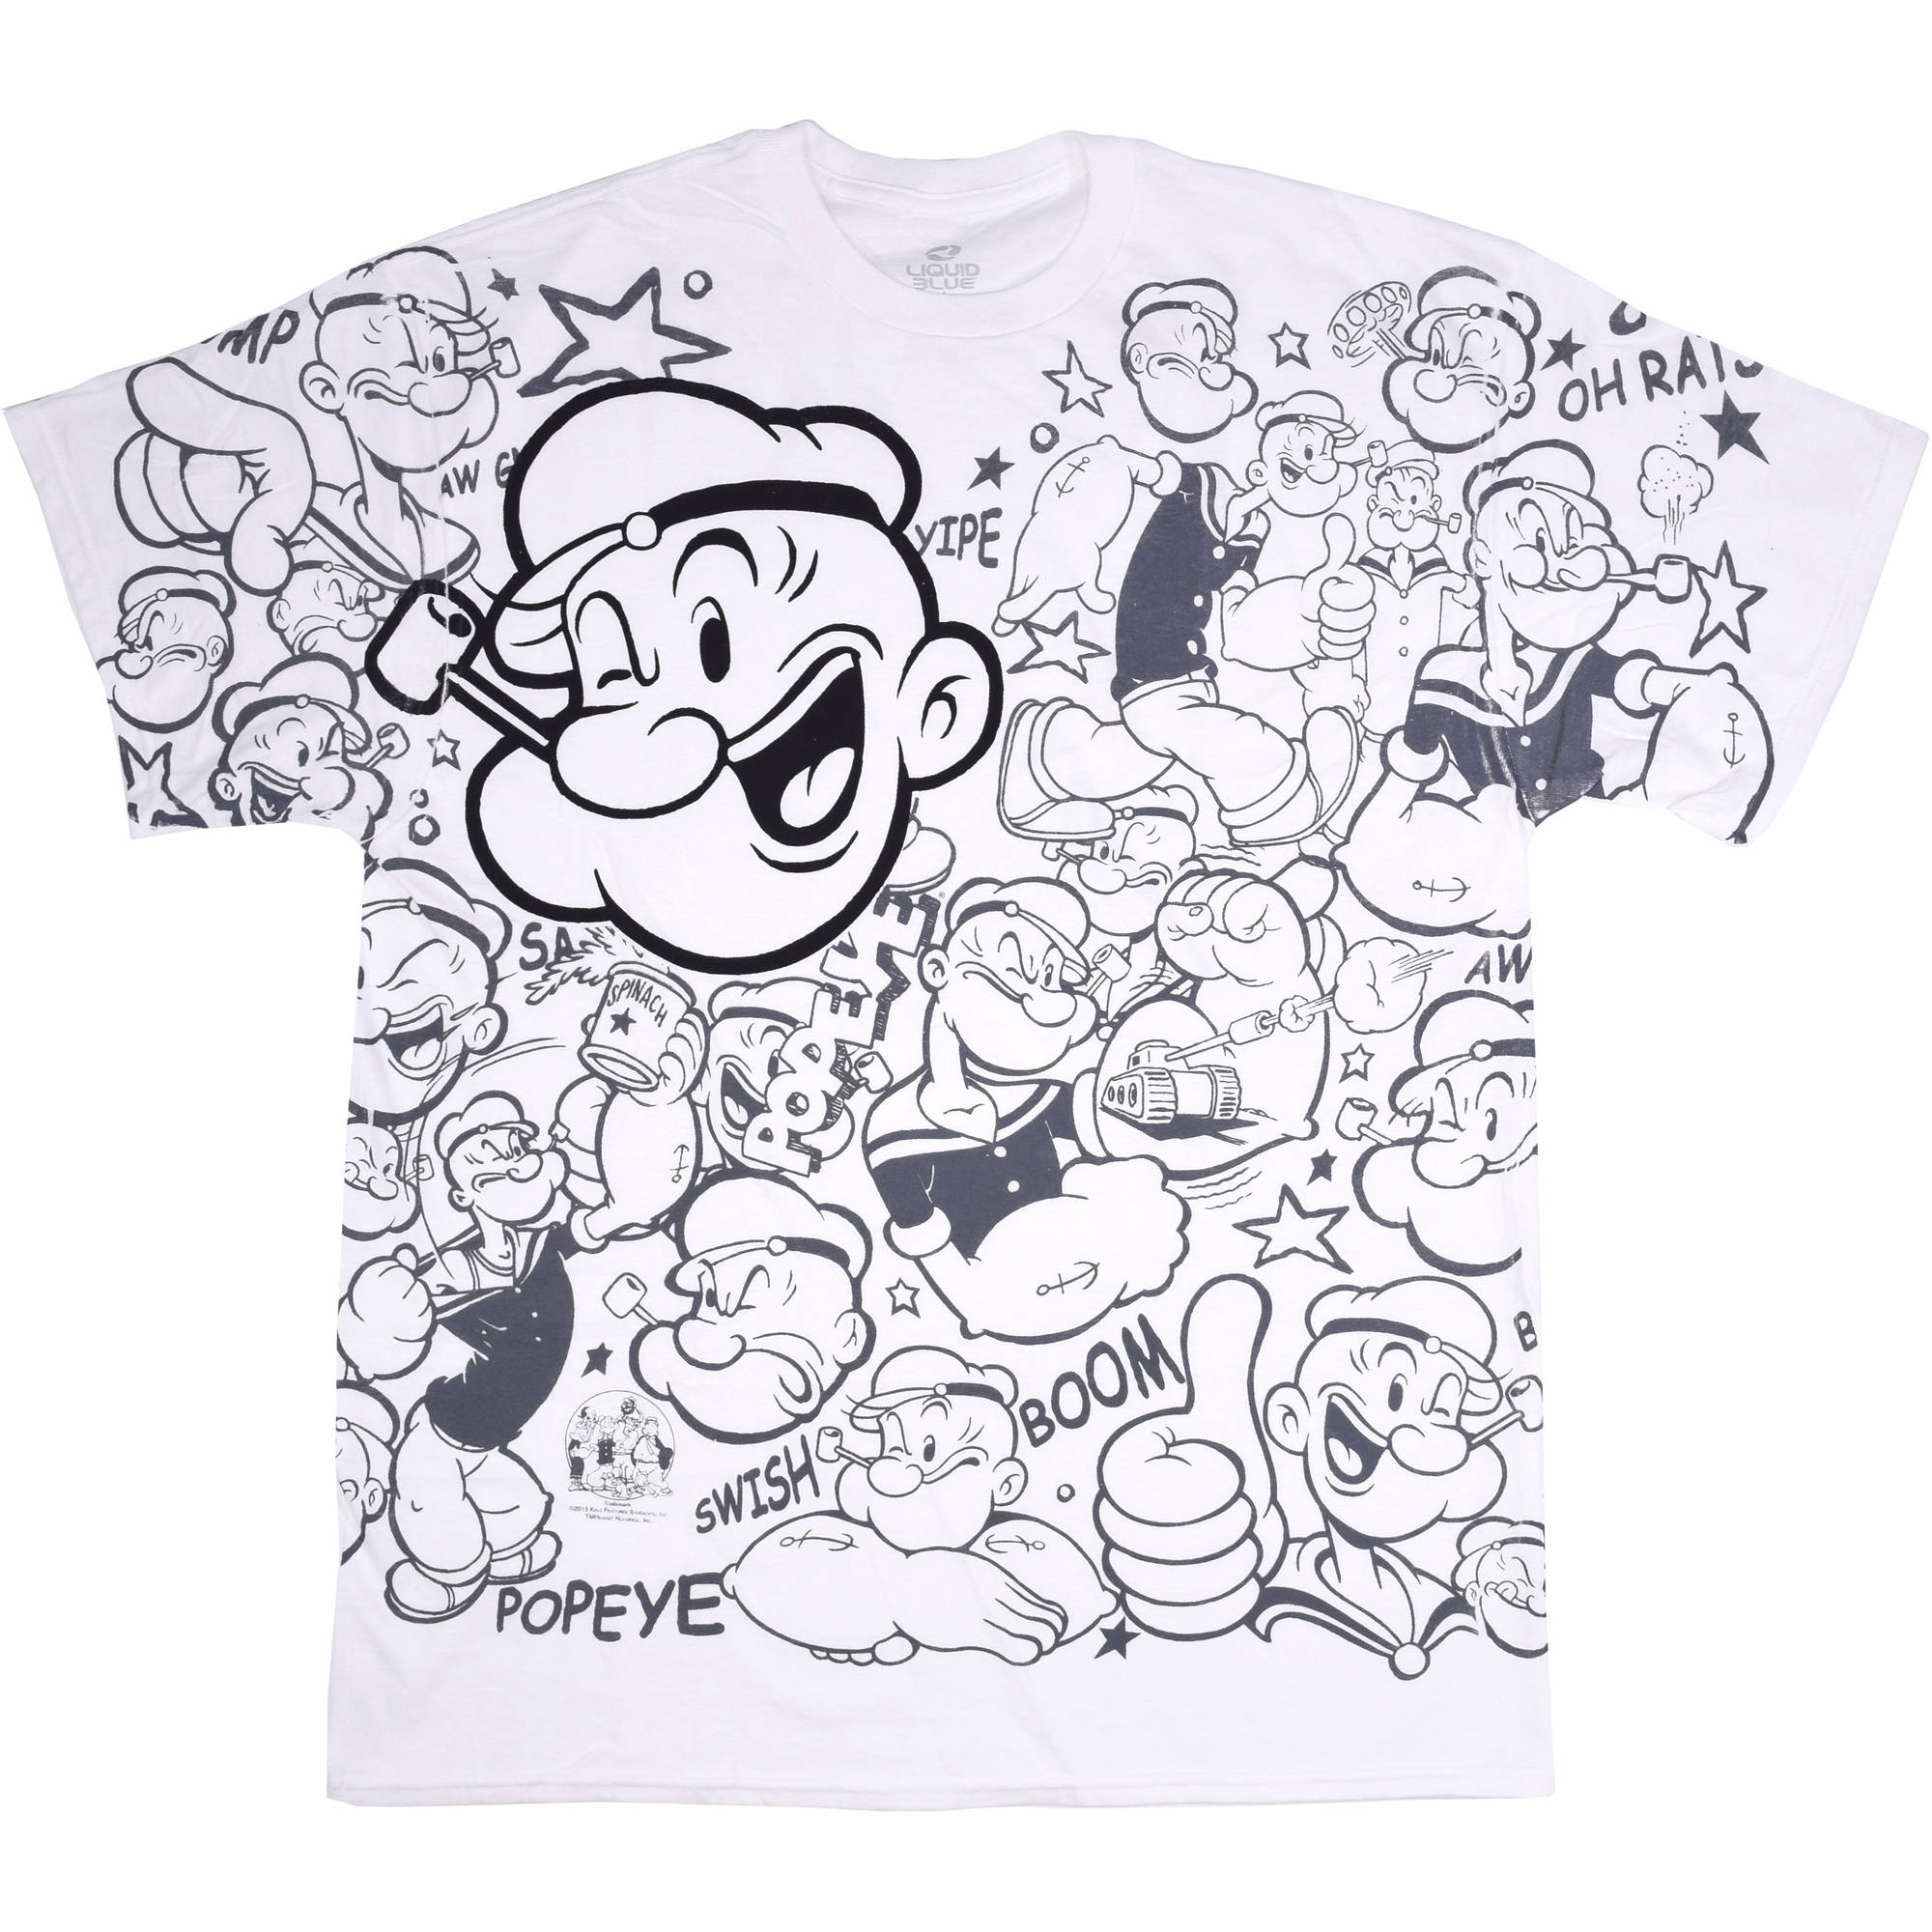 Popeye All Over Print Big Men's Graphic Tee